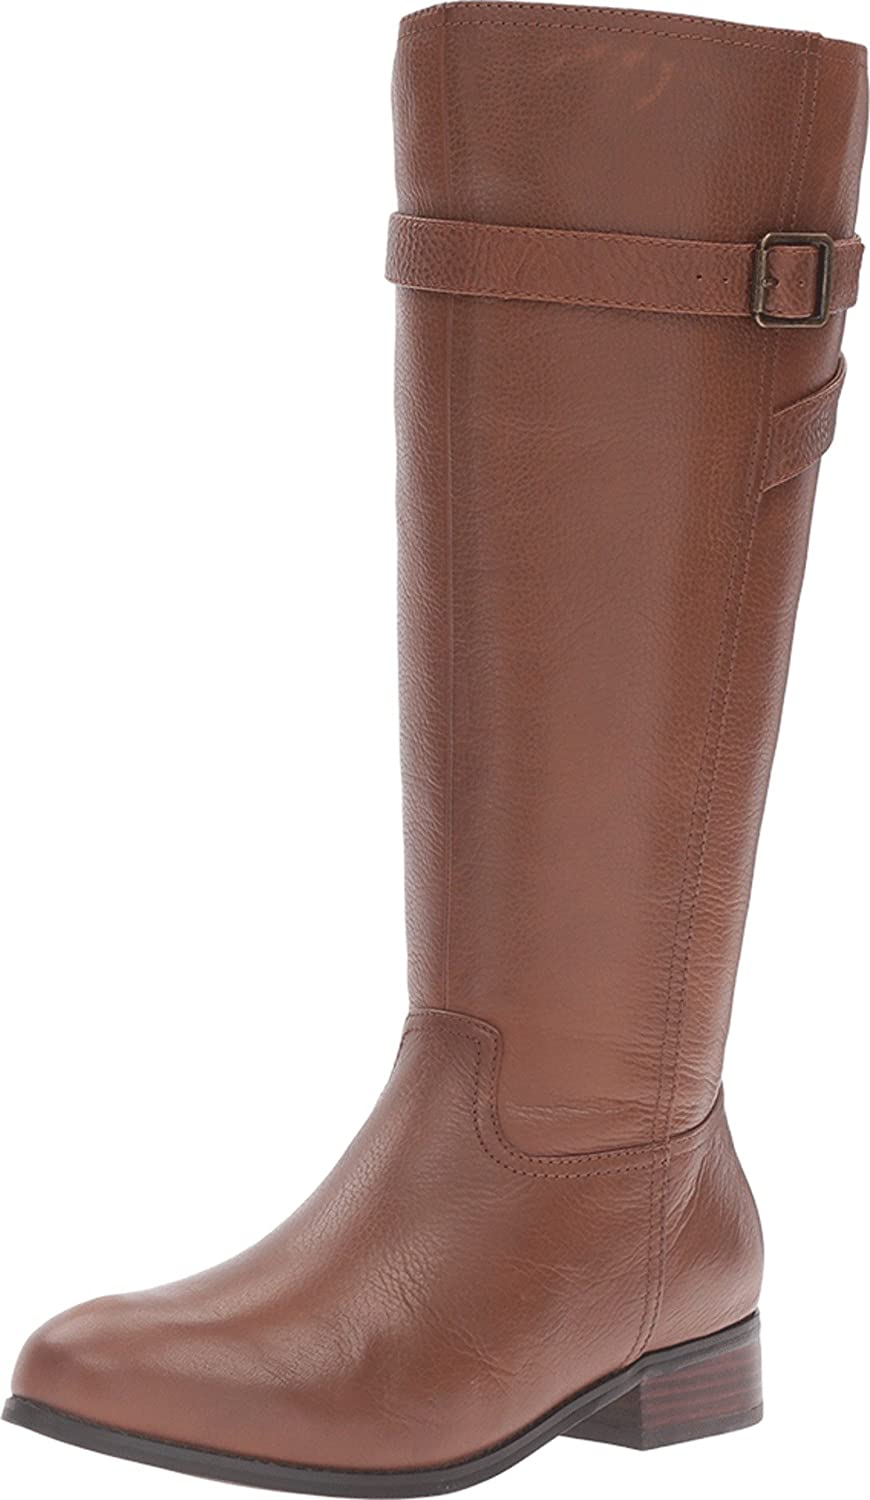 Trotters Women's Lyra Wide Calf Riding Boot B019QTT09M 7 XW US|Cognac Veg Tumbled Leather